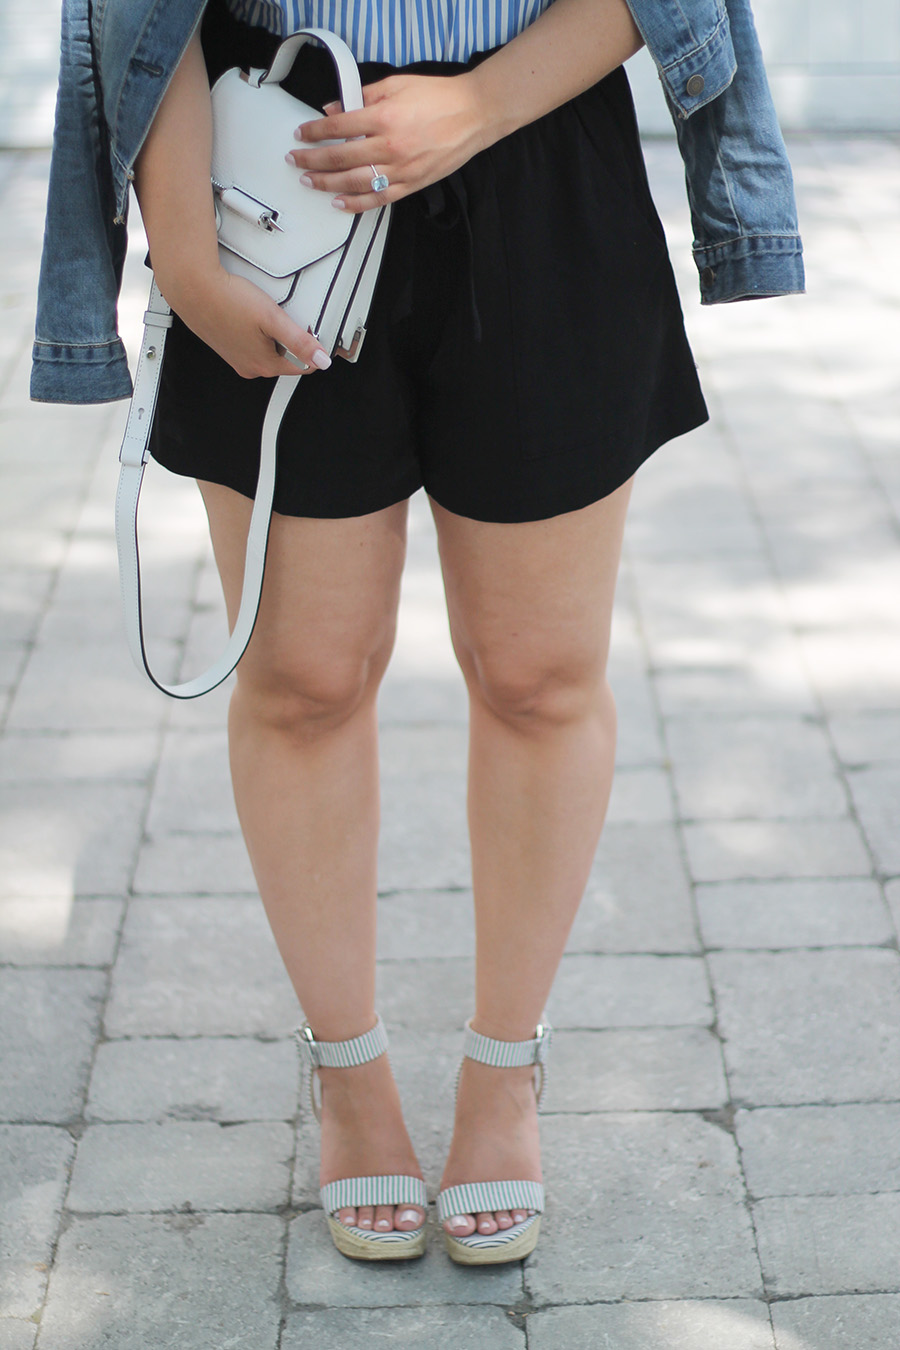 Black-Shorts-White-Handbag-Wedges-Outfit-Ideas